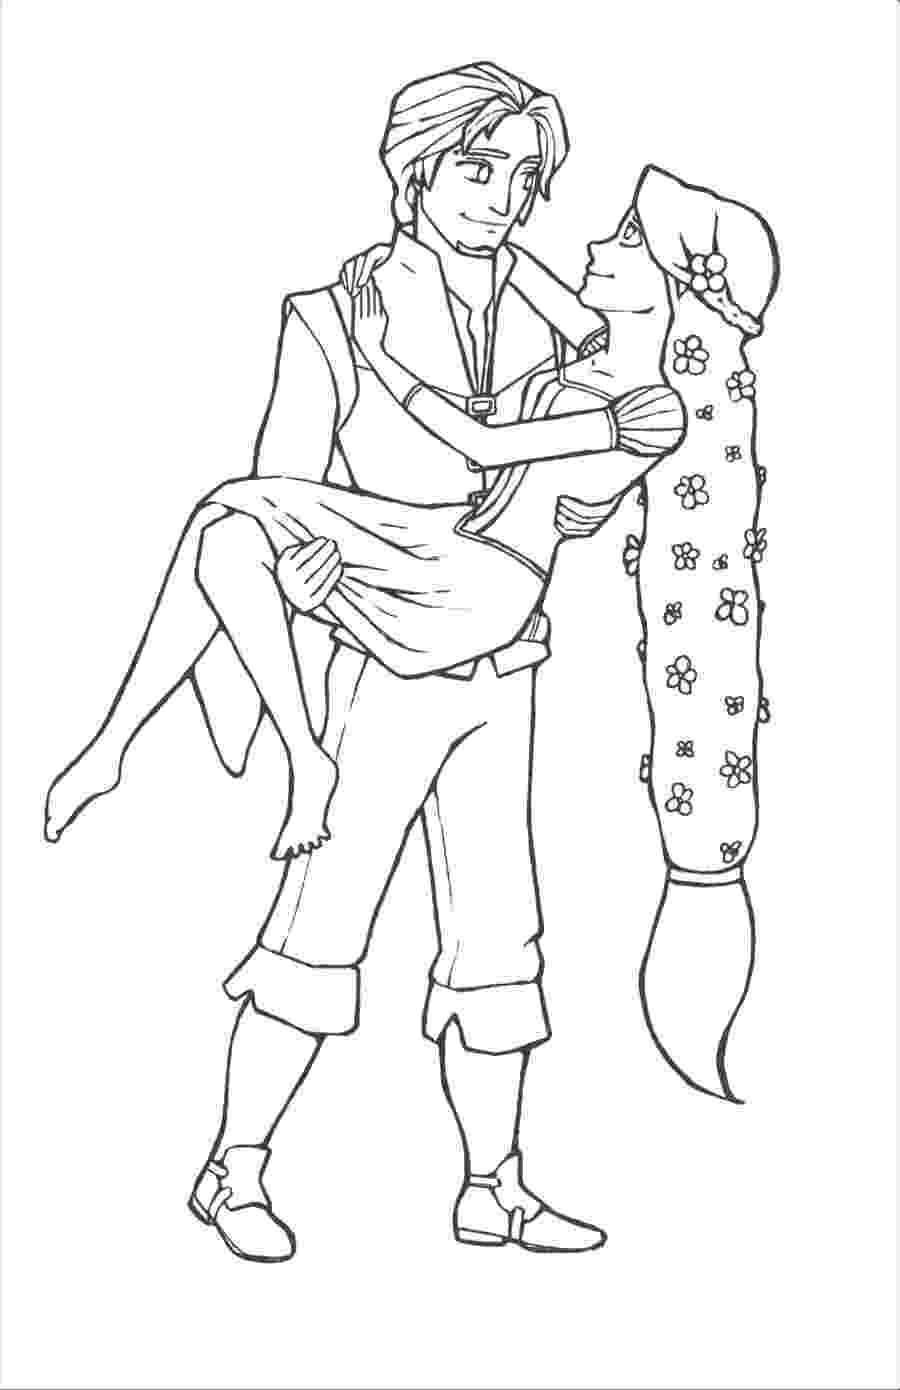 rapunzel pictures to print and colour free print your own rapunzel coloring page would be print and to pictures rapunzel colour